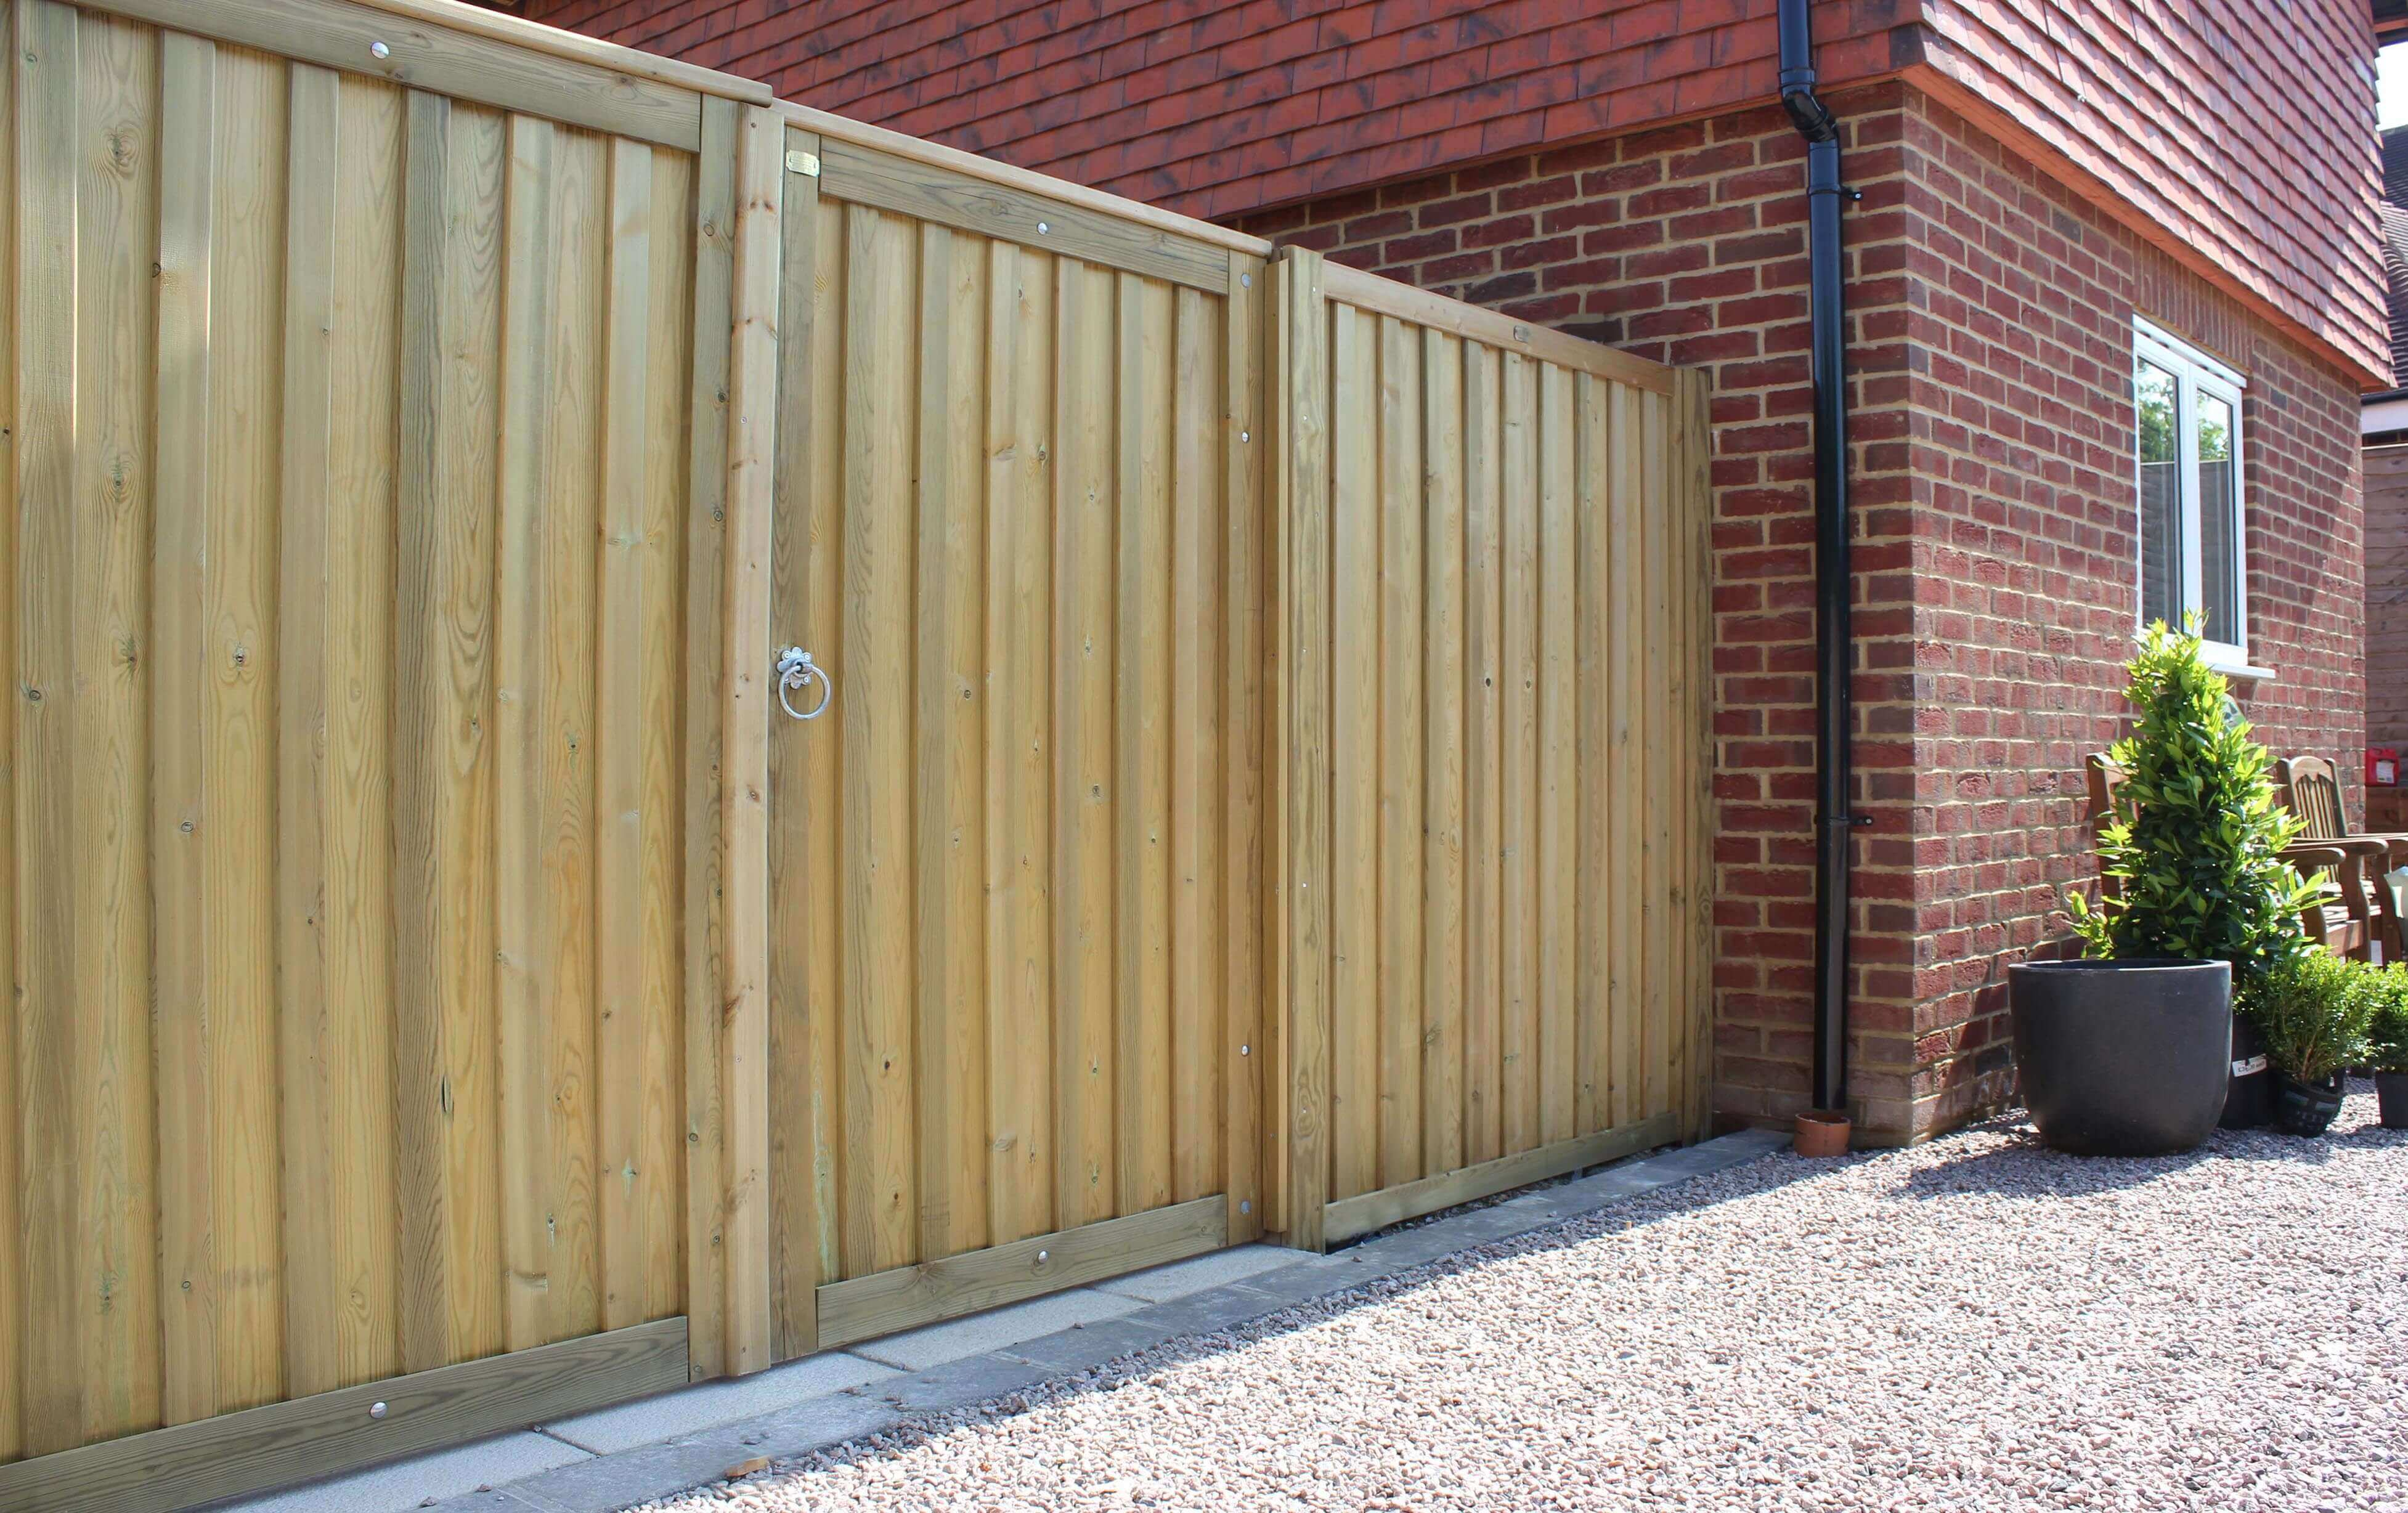 Timber chilham Fence panels and garden gate